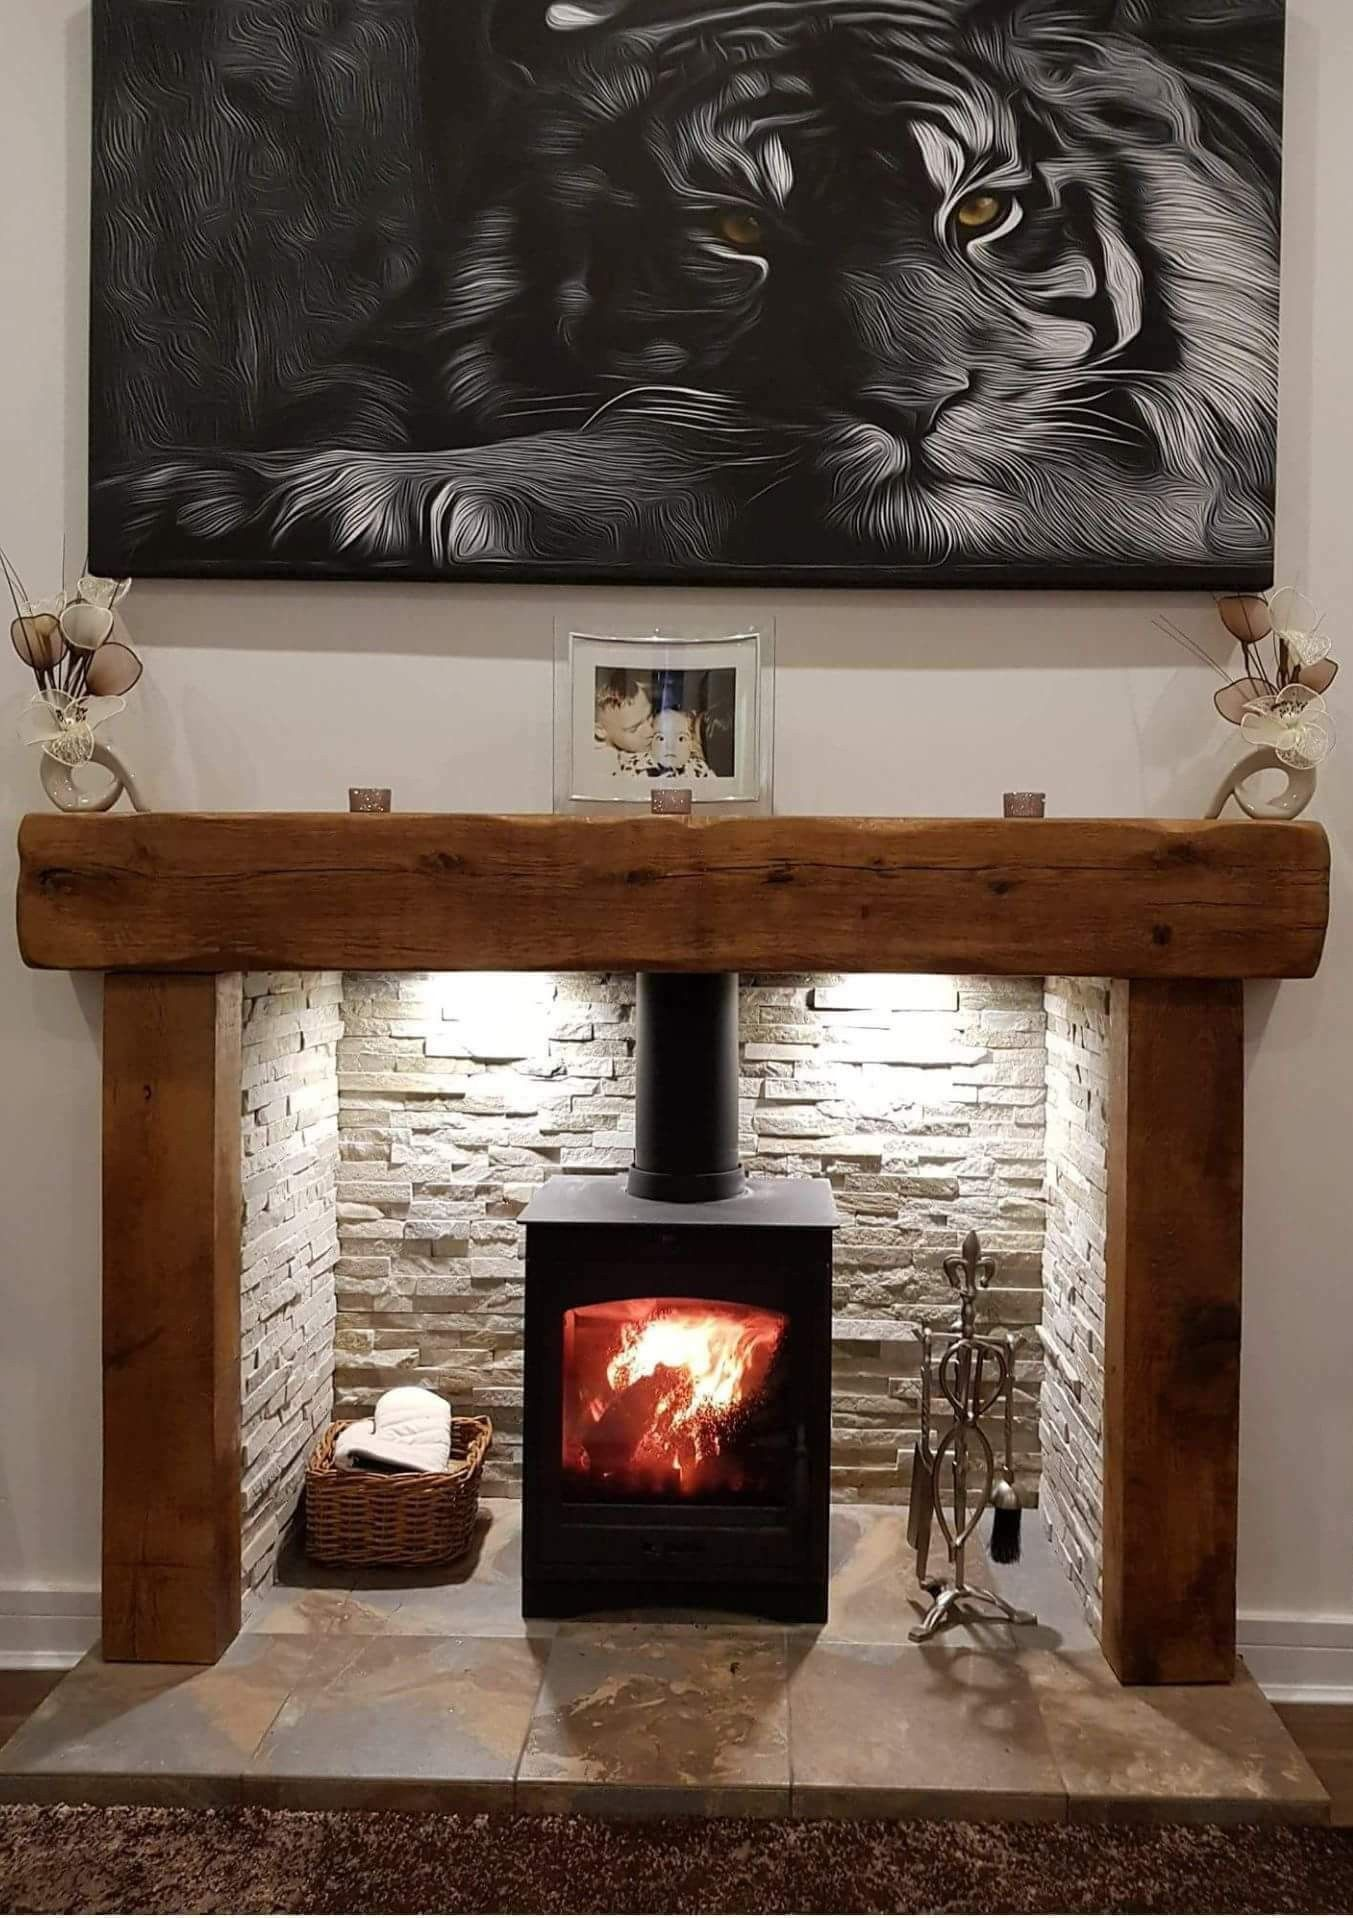 This Stove In New Dining Room Log Burner Living Room Stove